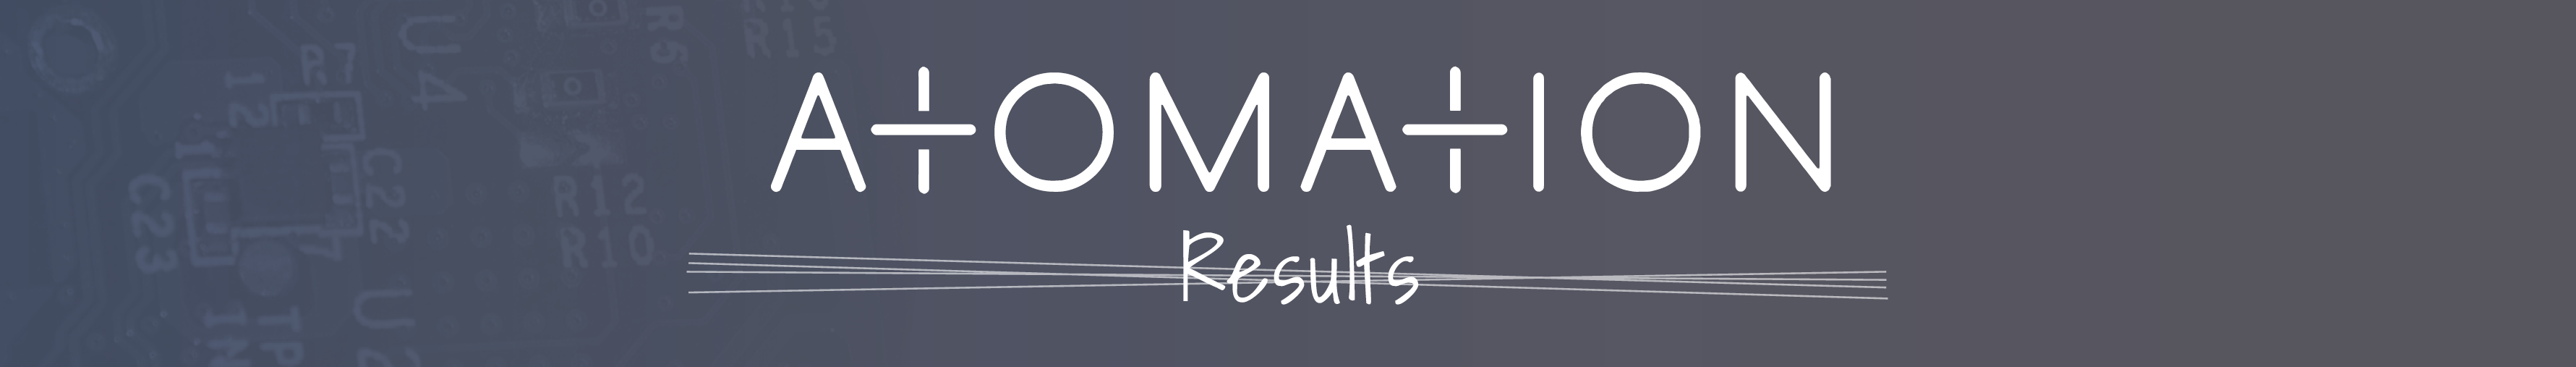 Atomation Results